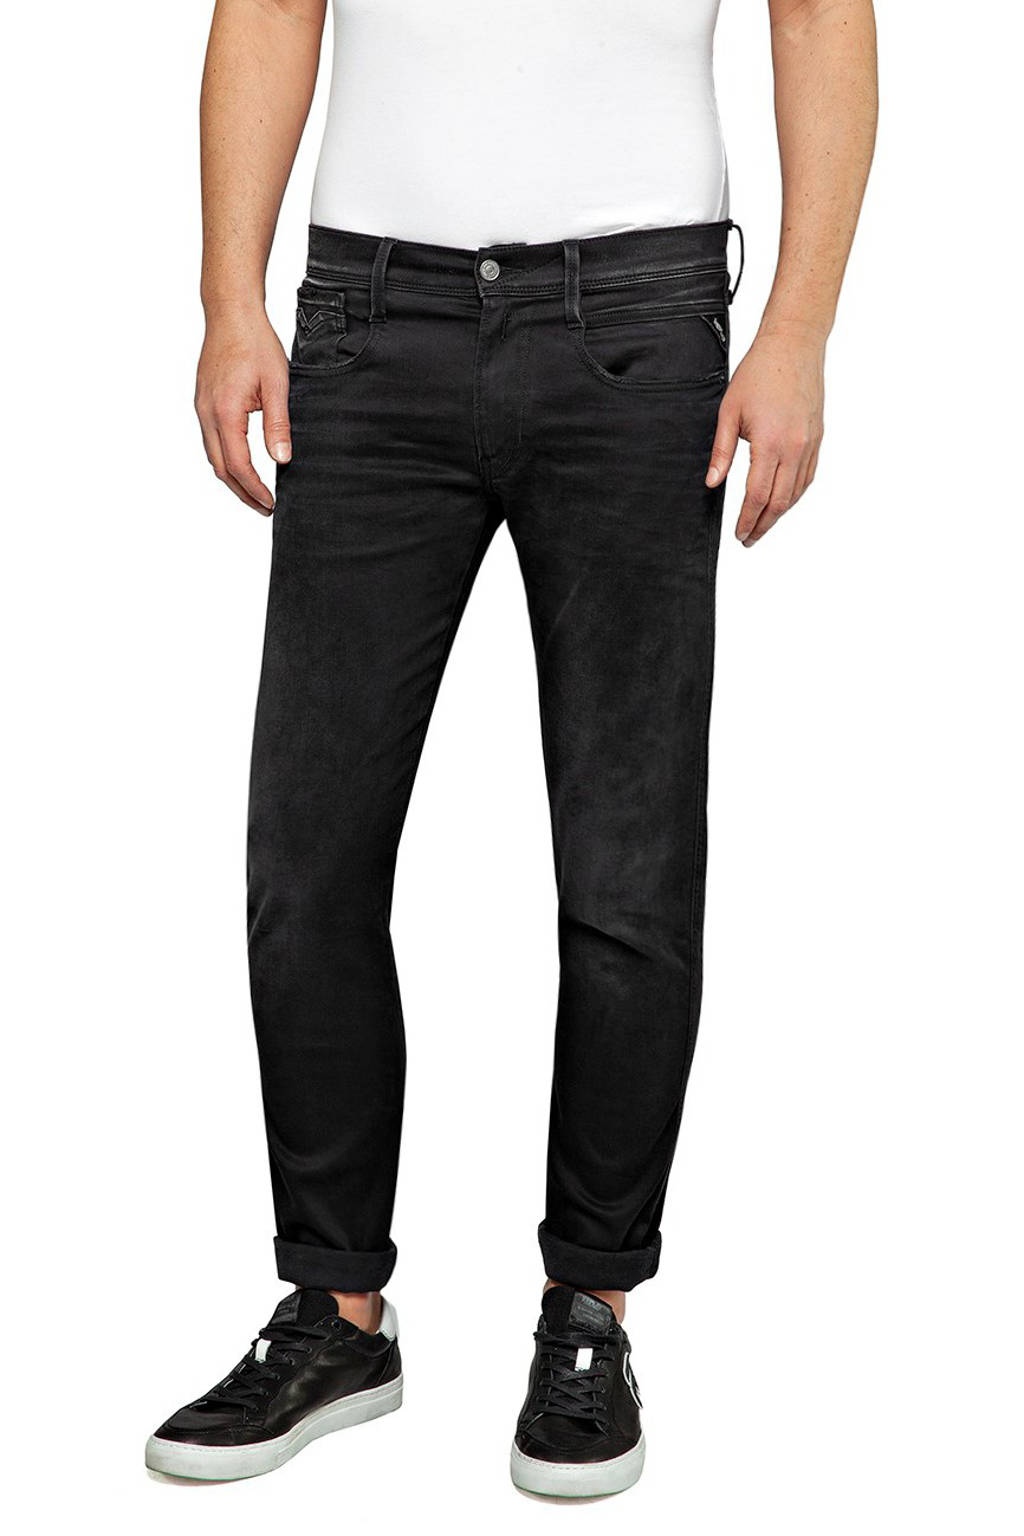 REPLAY slim fit jeans Anbass black, Black